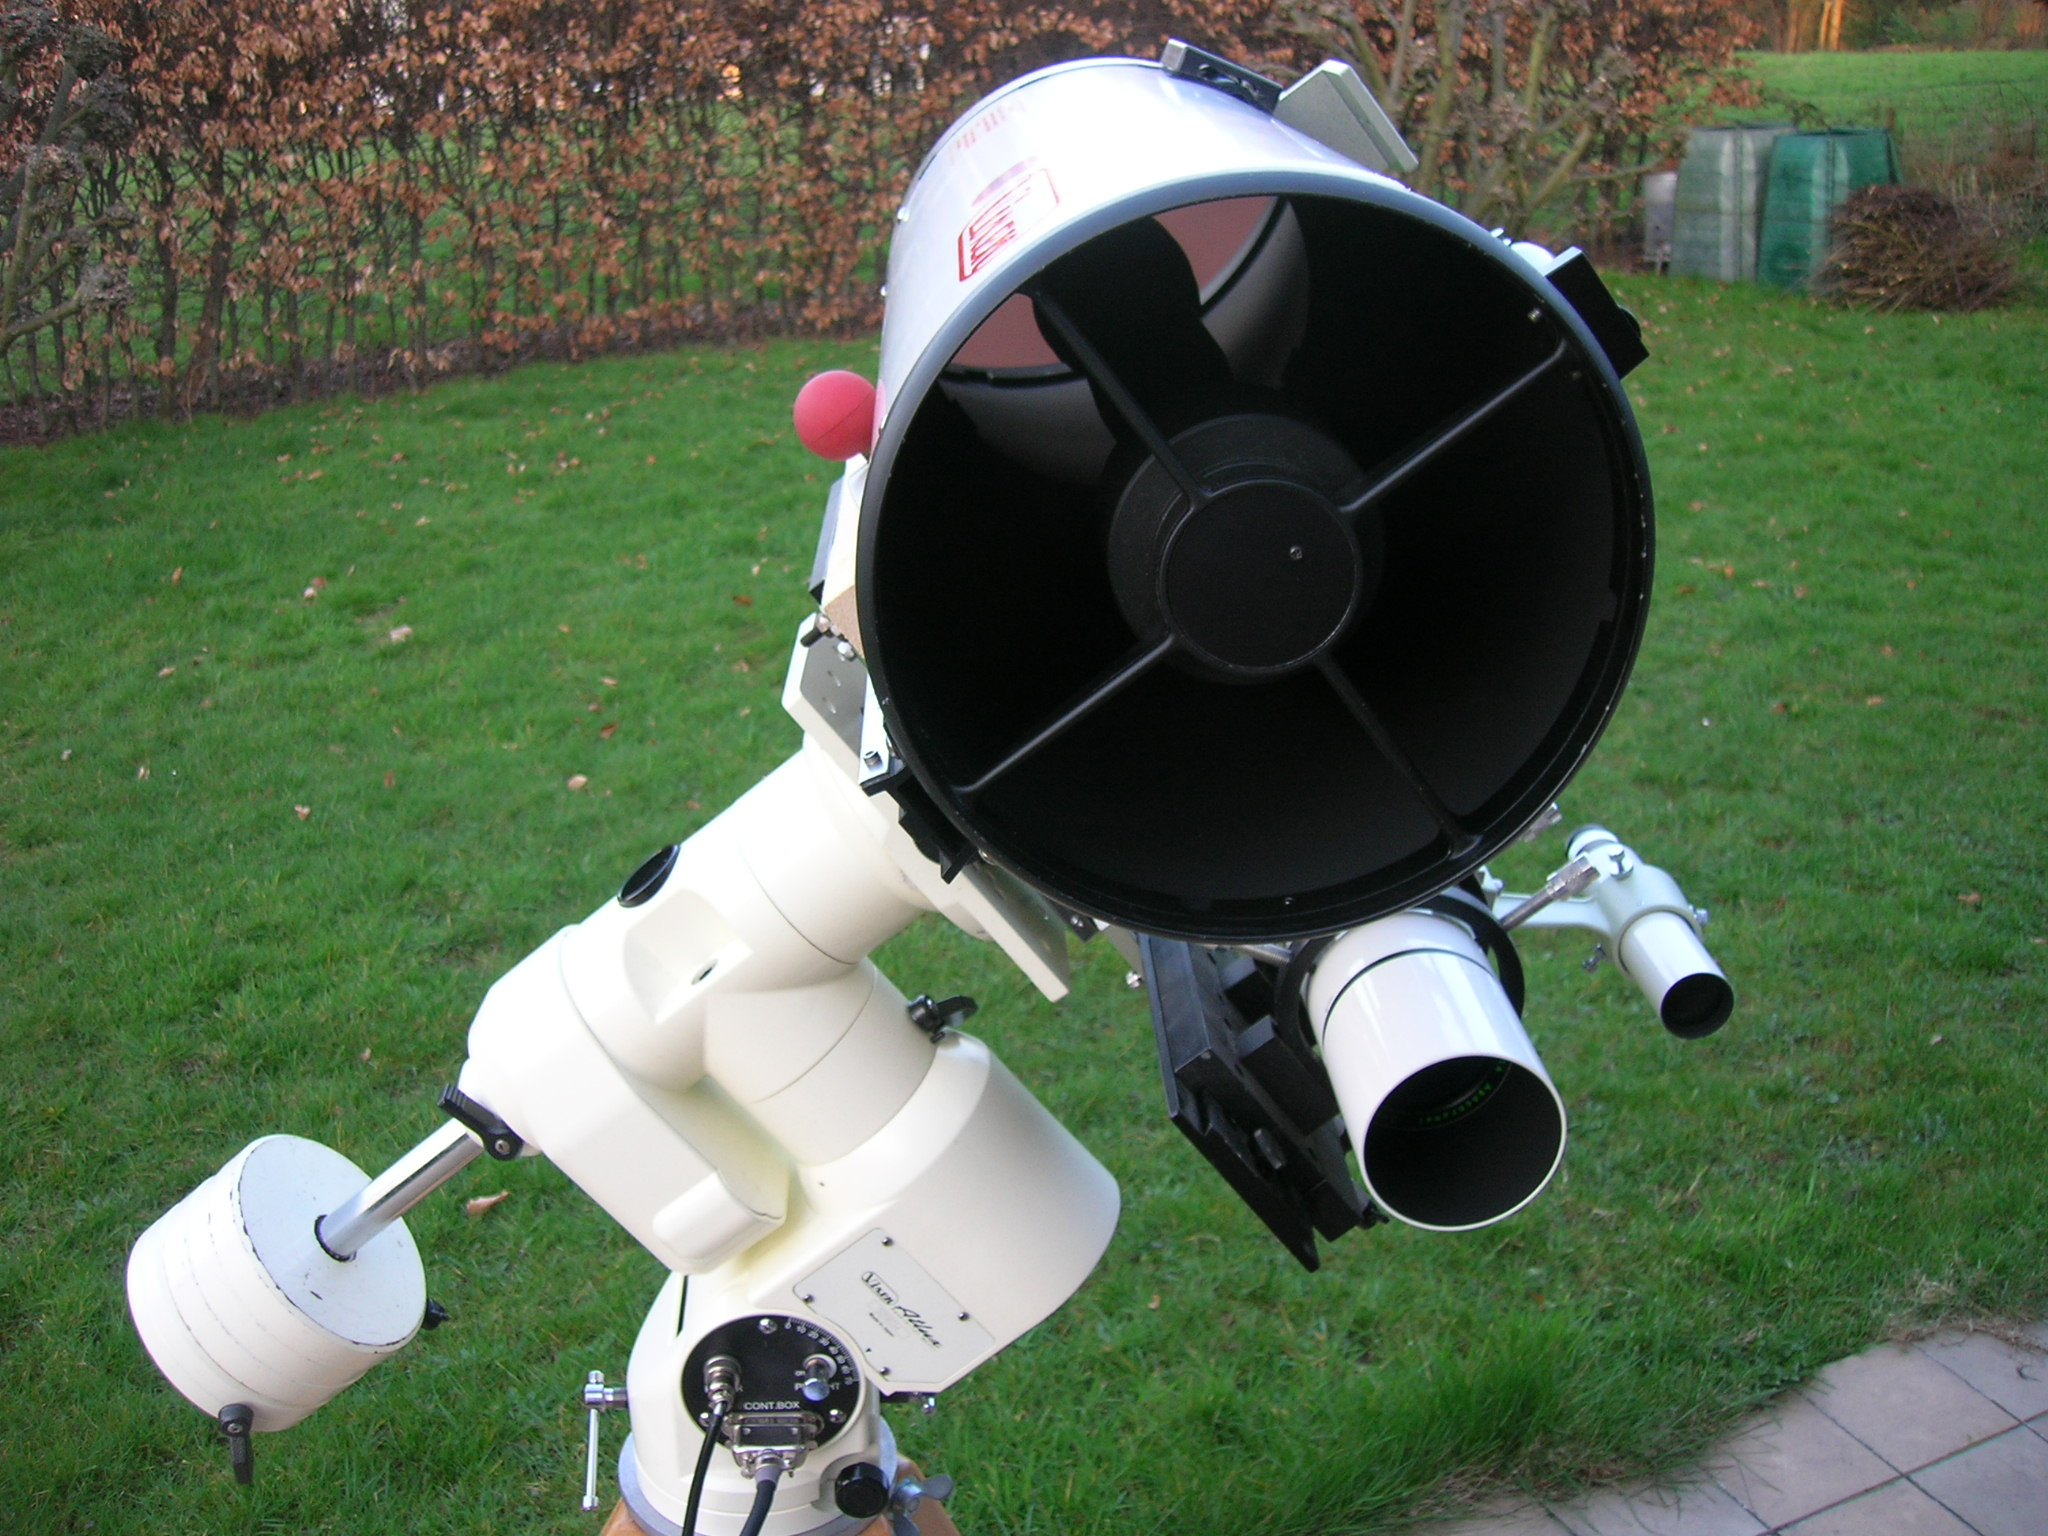 6d19b3f61a2de8 The three telescopes are used on a Astro-Physics Mach1 german equatorial  mount since December 2007. I previously owned a Vixen New Atlux mount with  ...